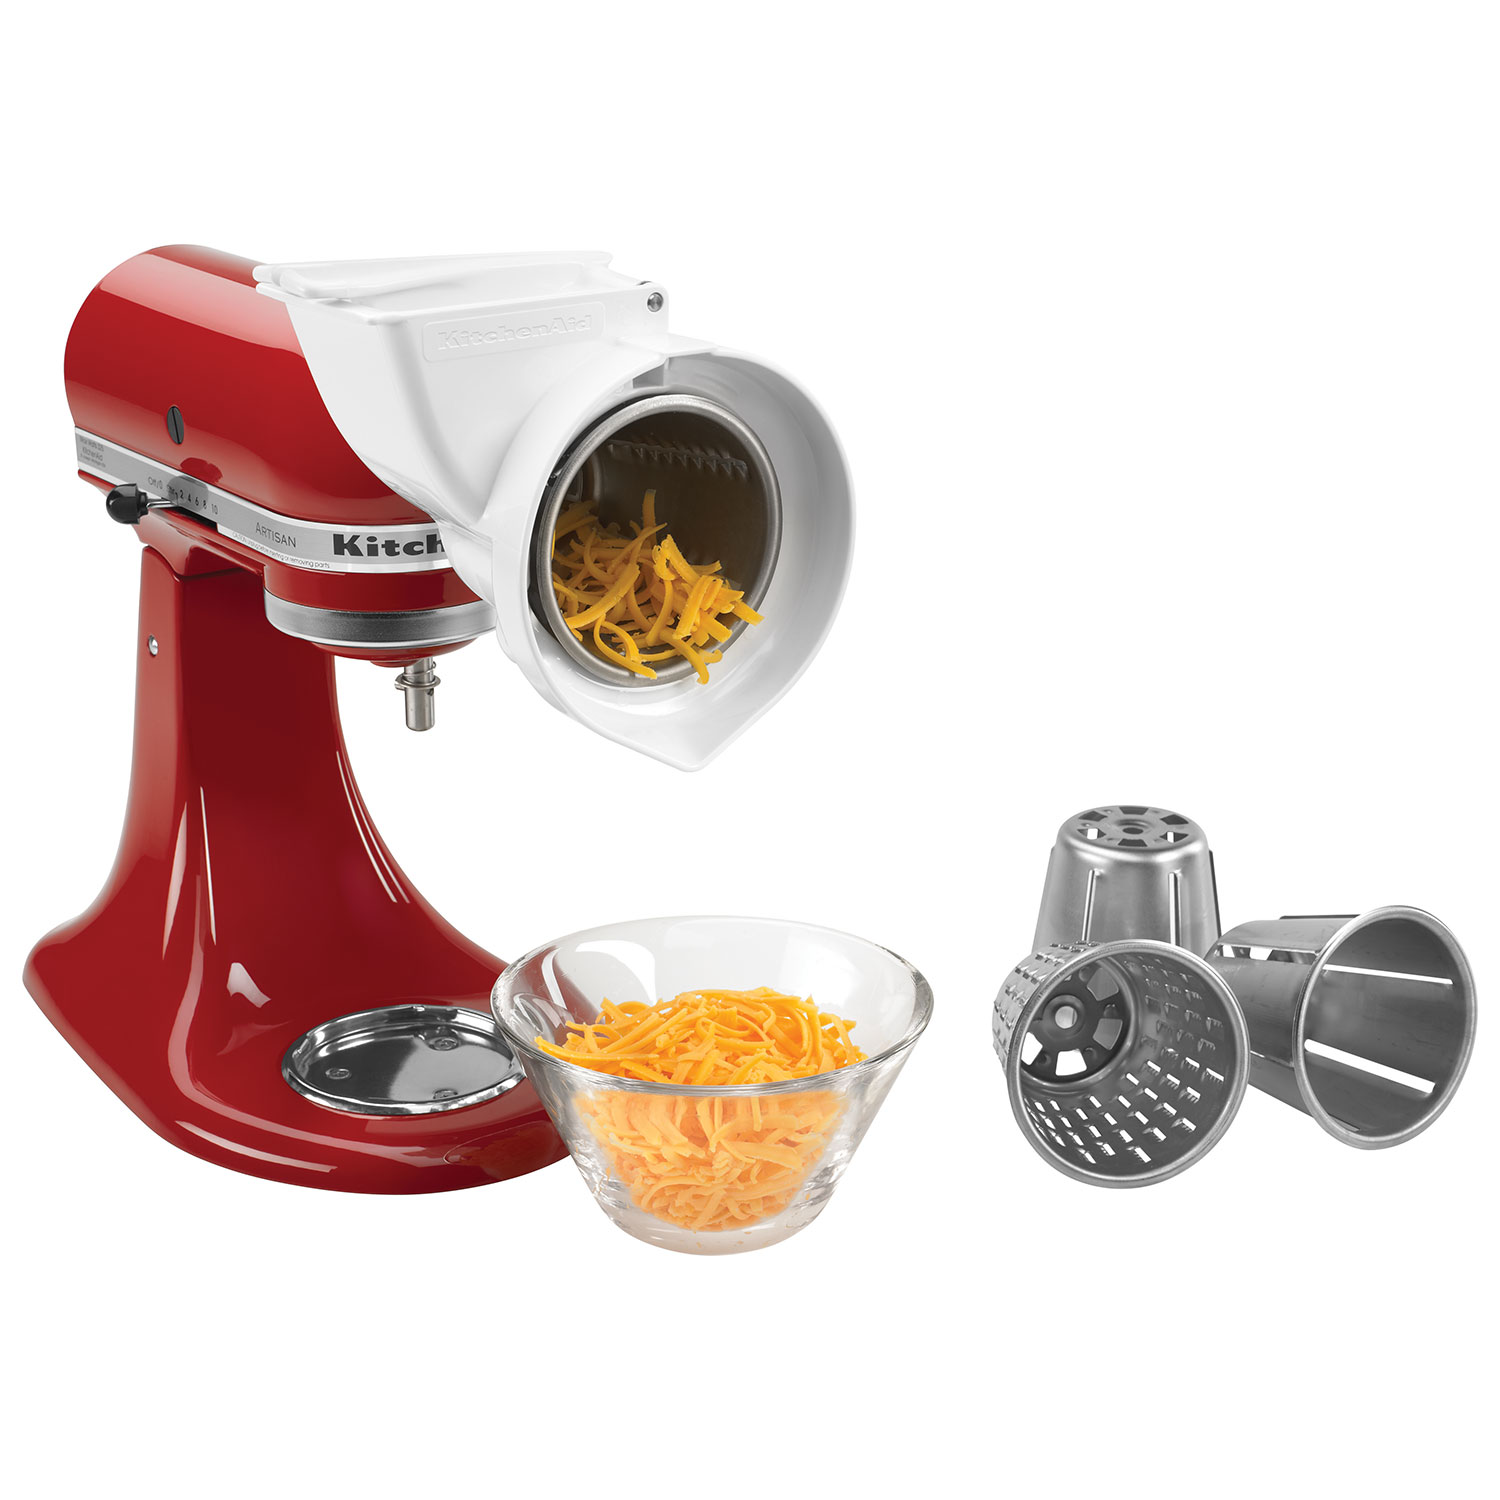 KitchenAid Roto Slicer With Shredder Stand Mixer Attachment : Mixer  Attachments   Best Buy Canada